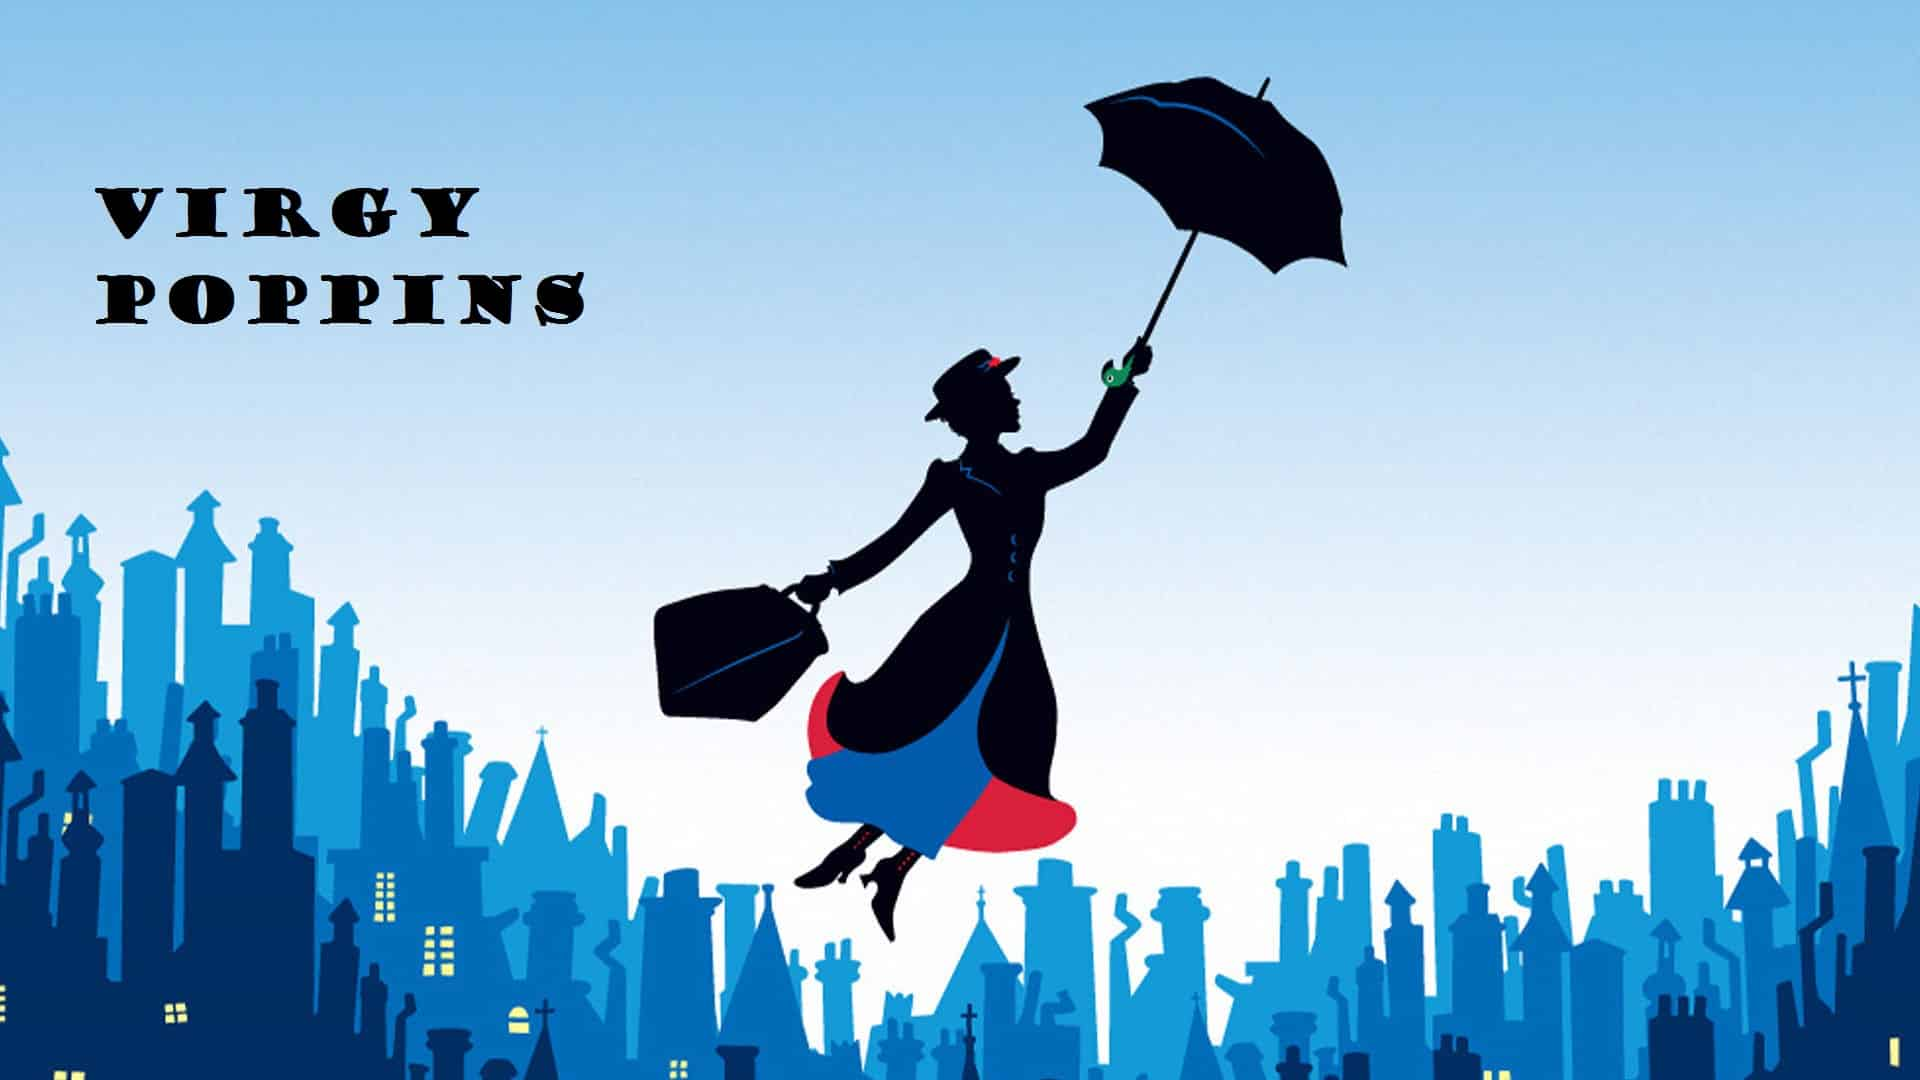 Virgy Poppins